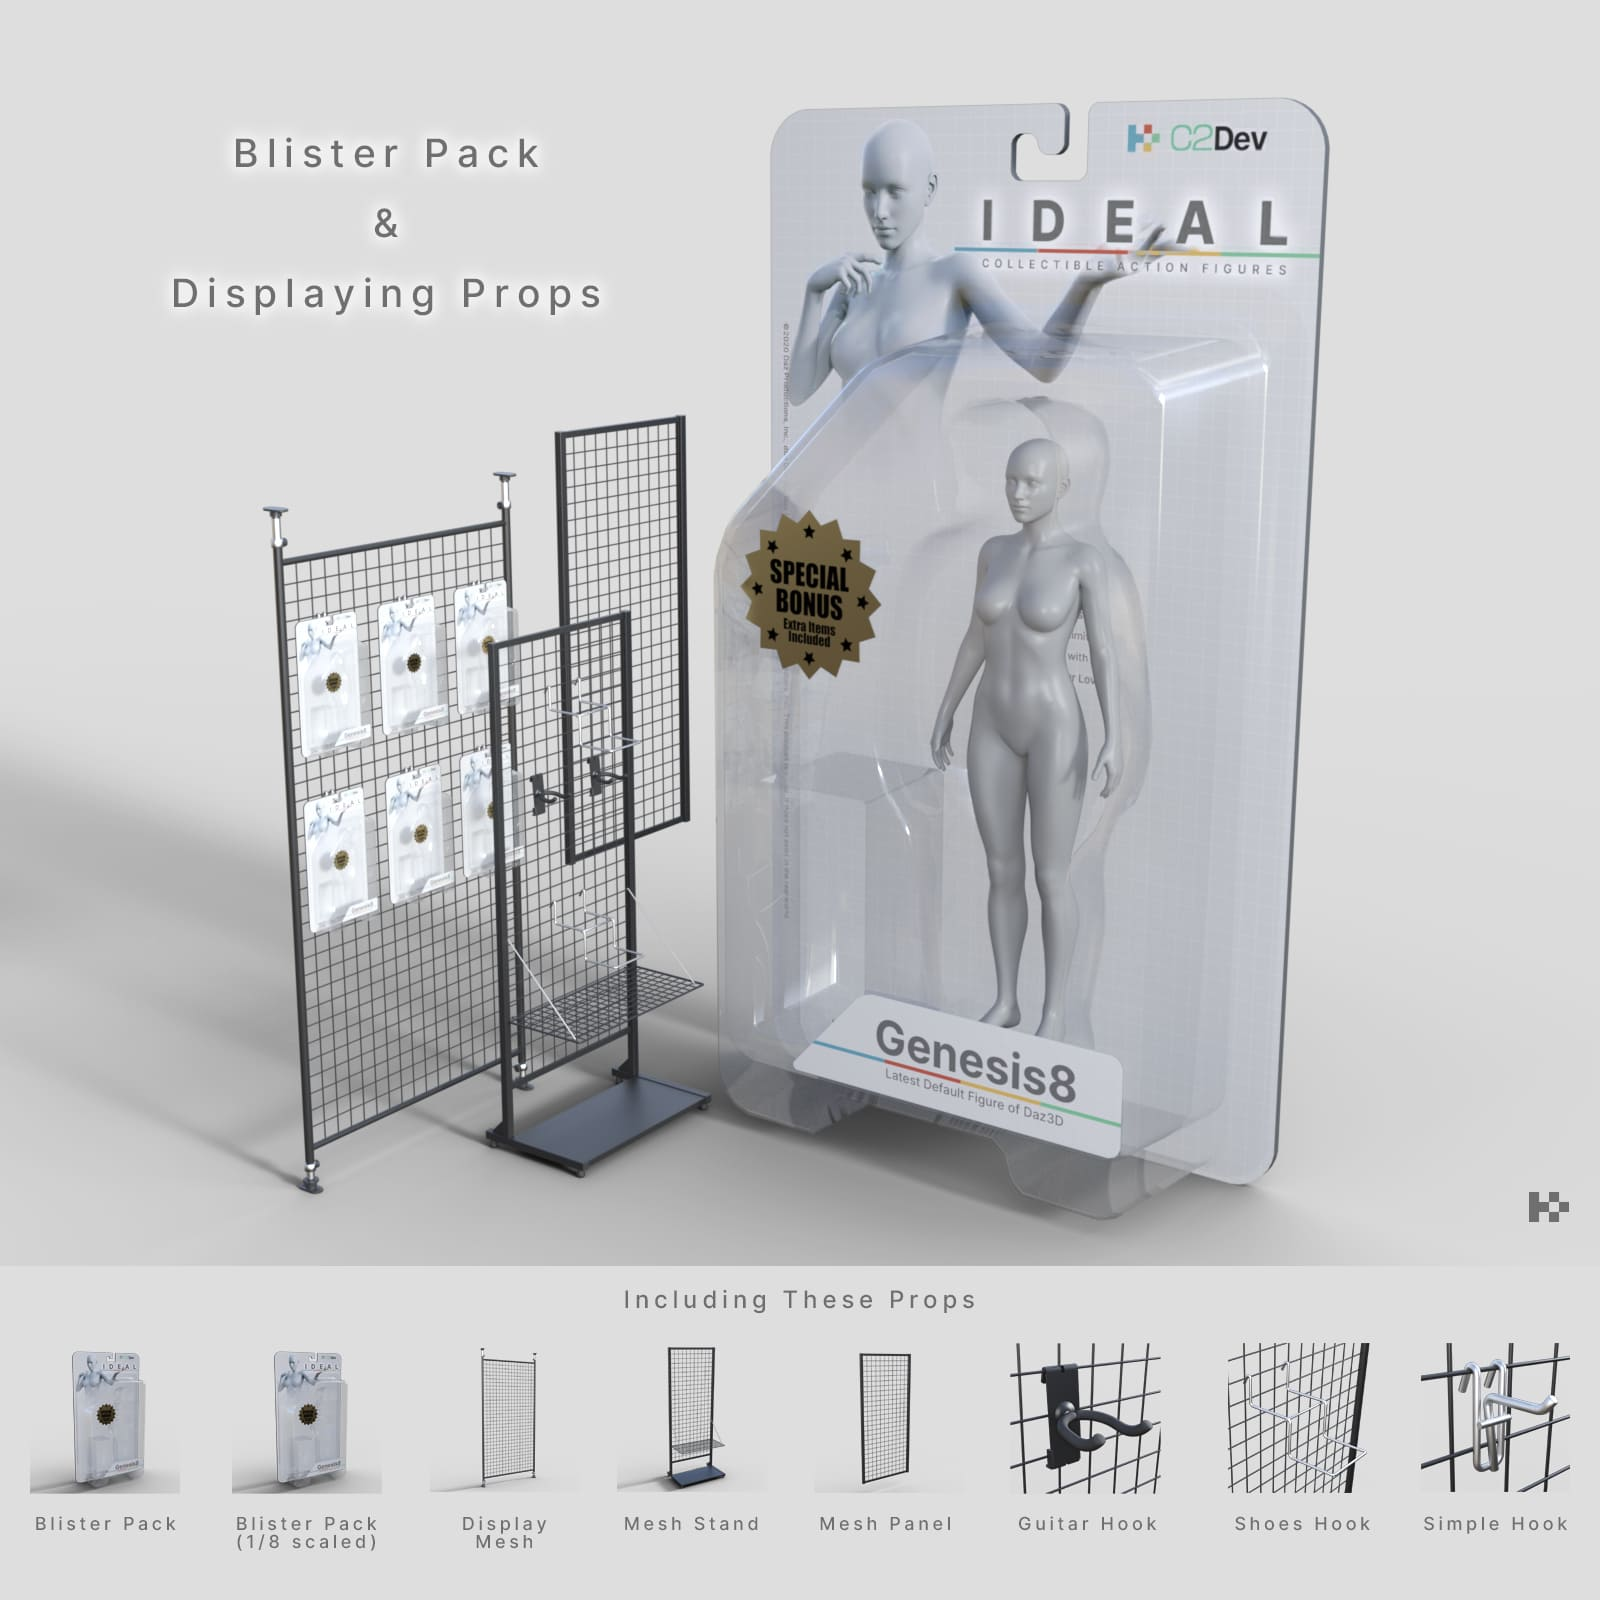 Blister Pack and Displaying Props_DAZ3D下载站